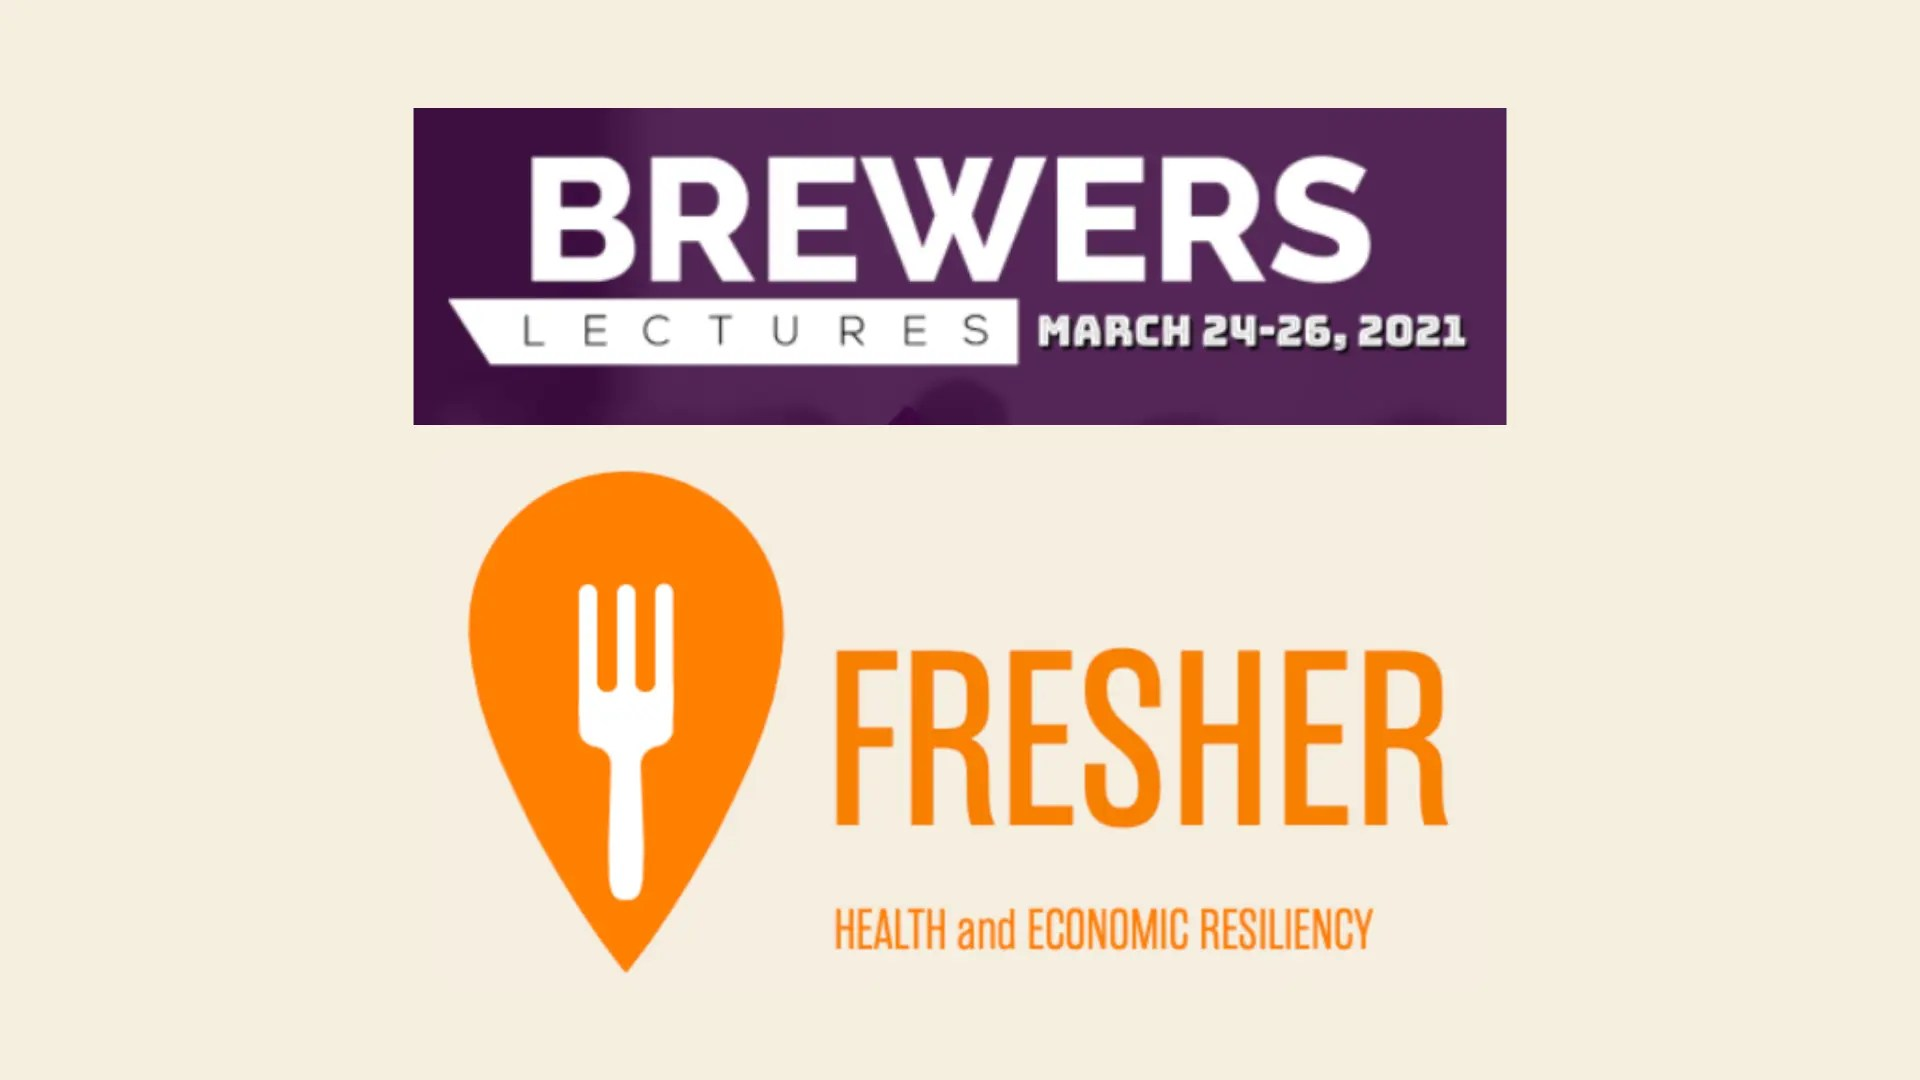 The FRESHER Team Presents at This Year's Bewers Lectures